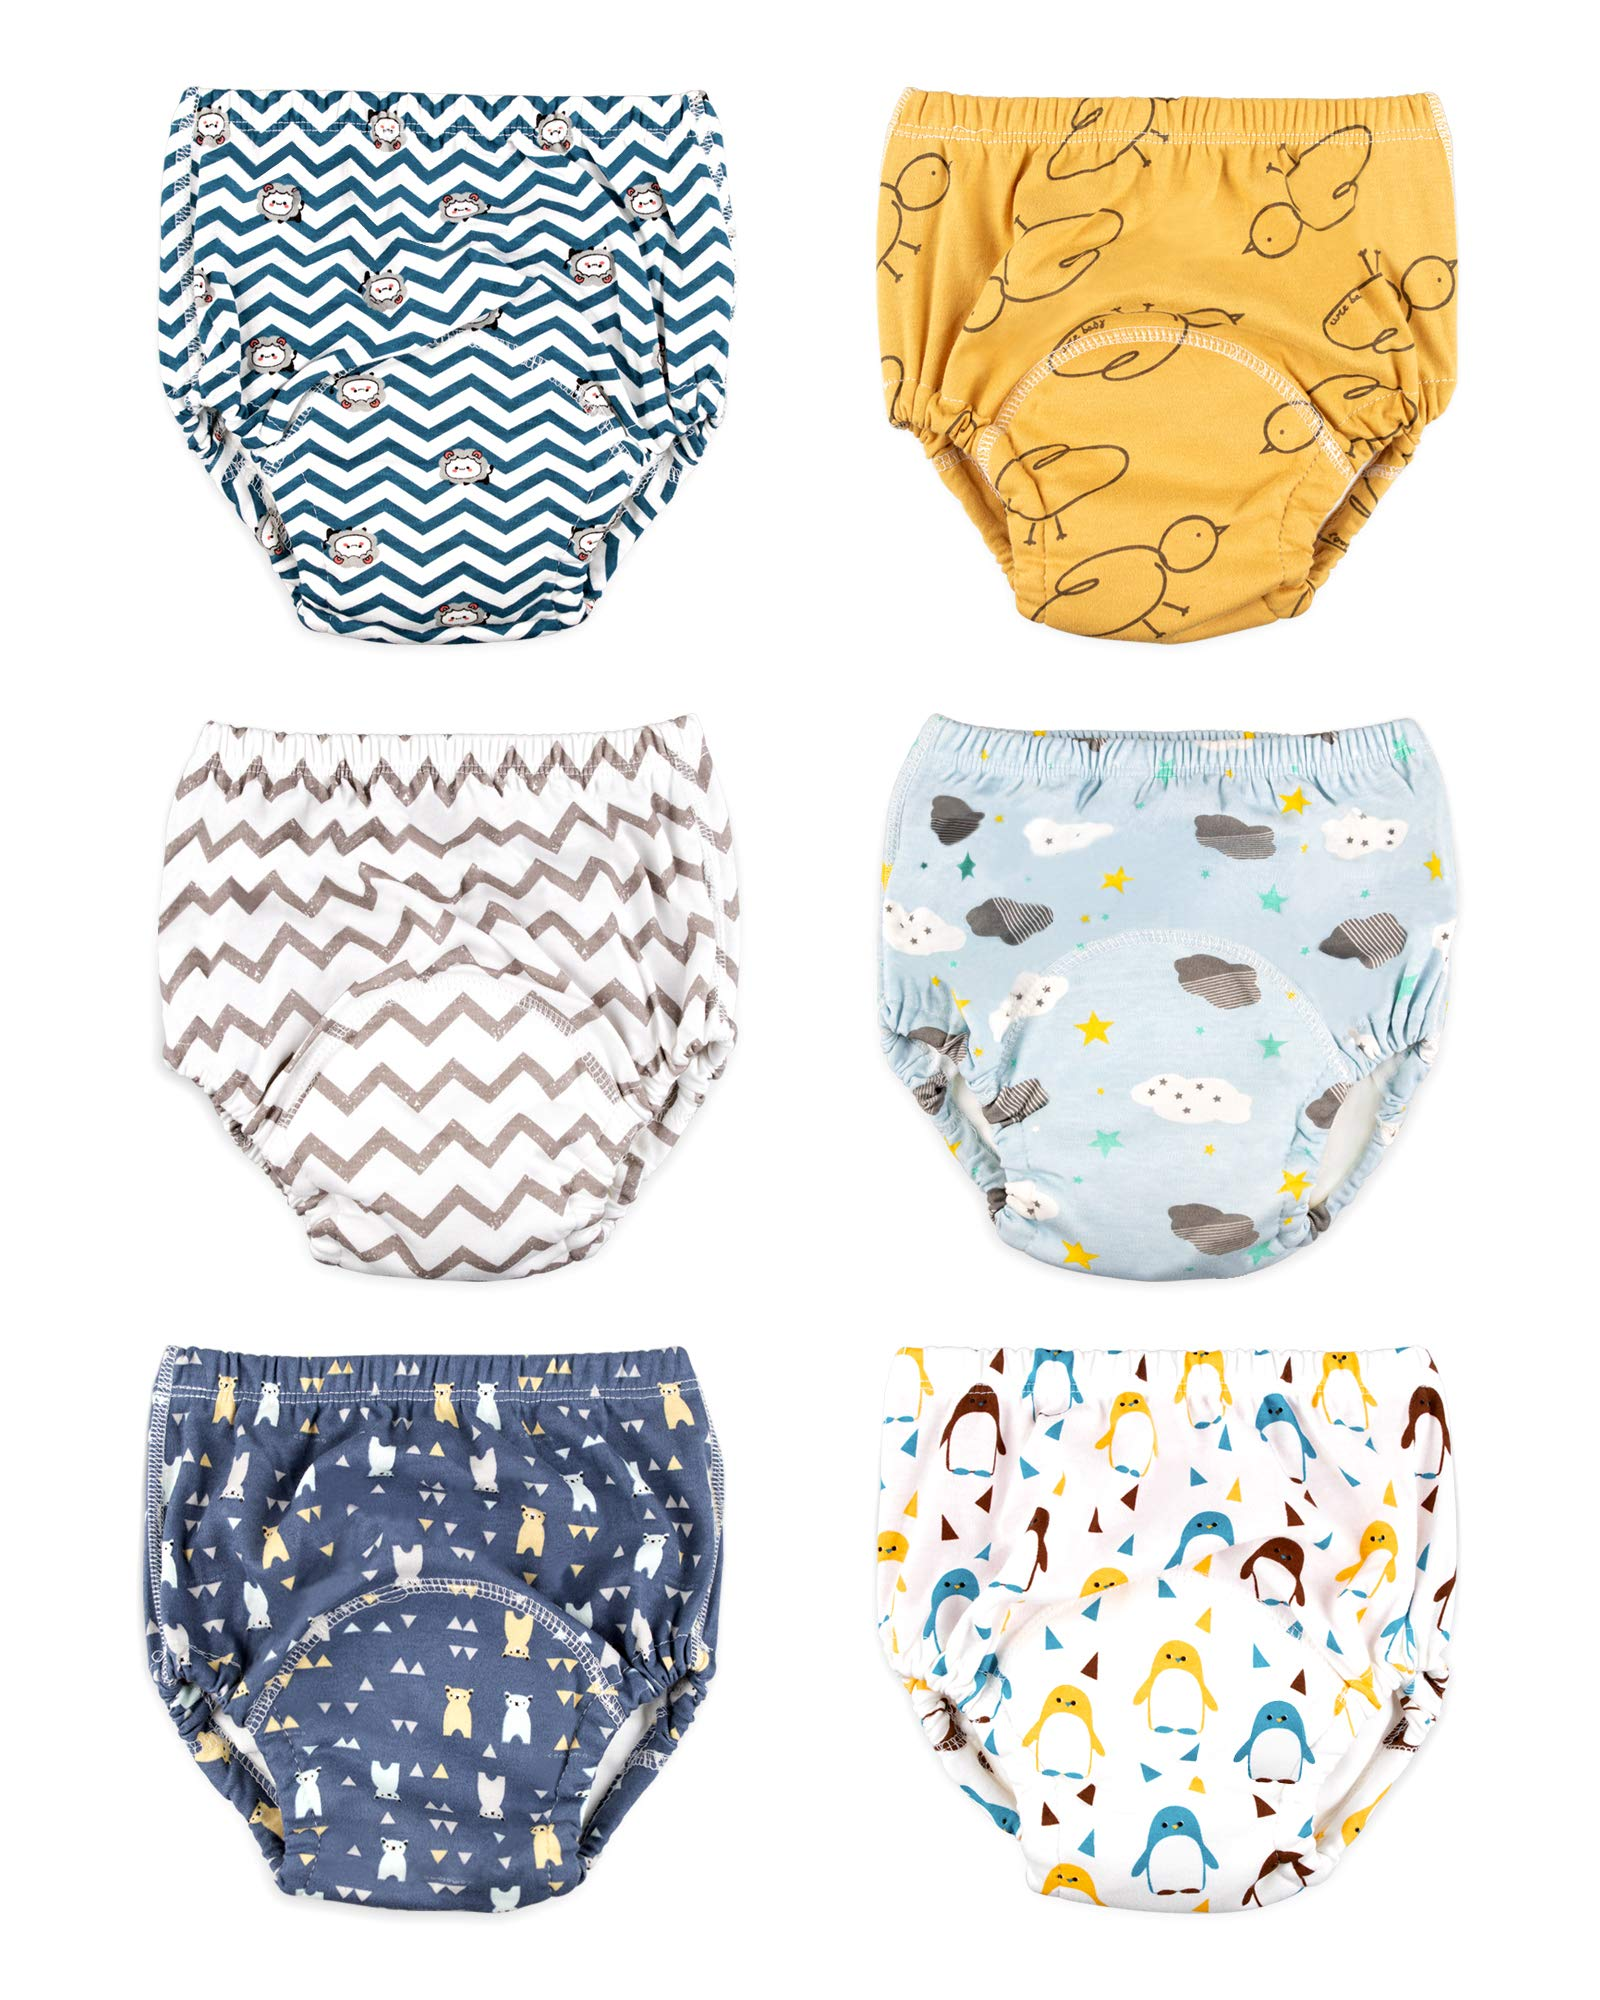 Max Shape Baby Boys Toddler Boys Potty Training Pants Underwear, Padded Cotton Pee Training Pants for Toddler Boys 6 Pack